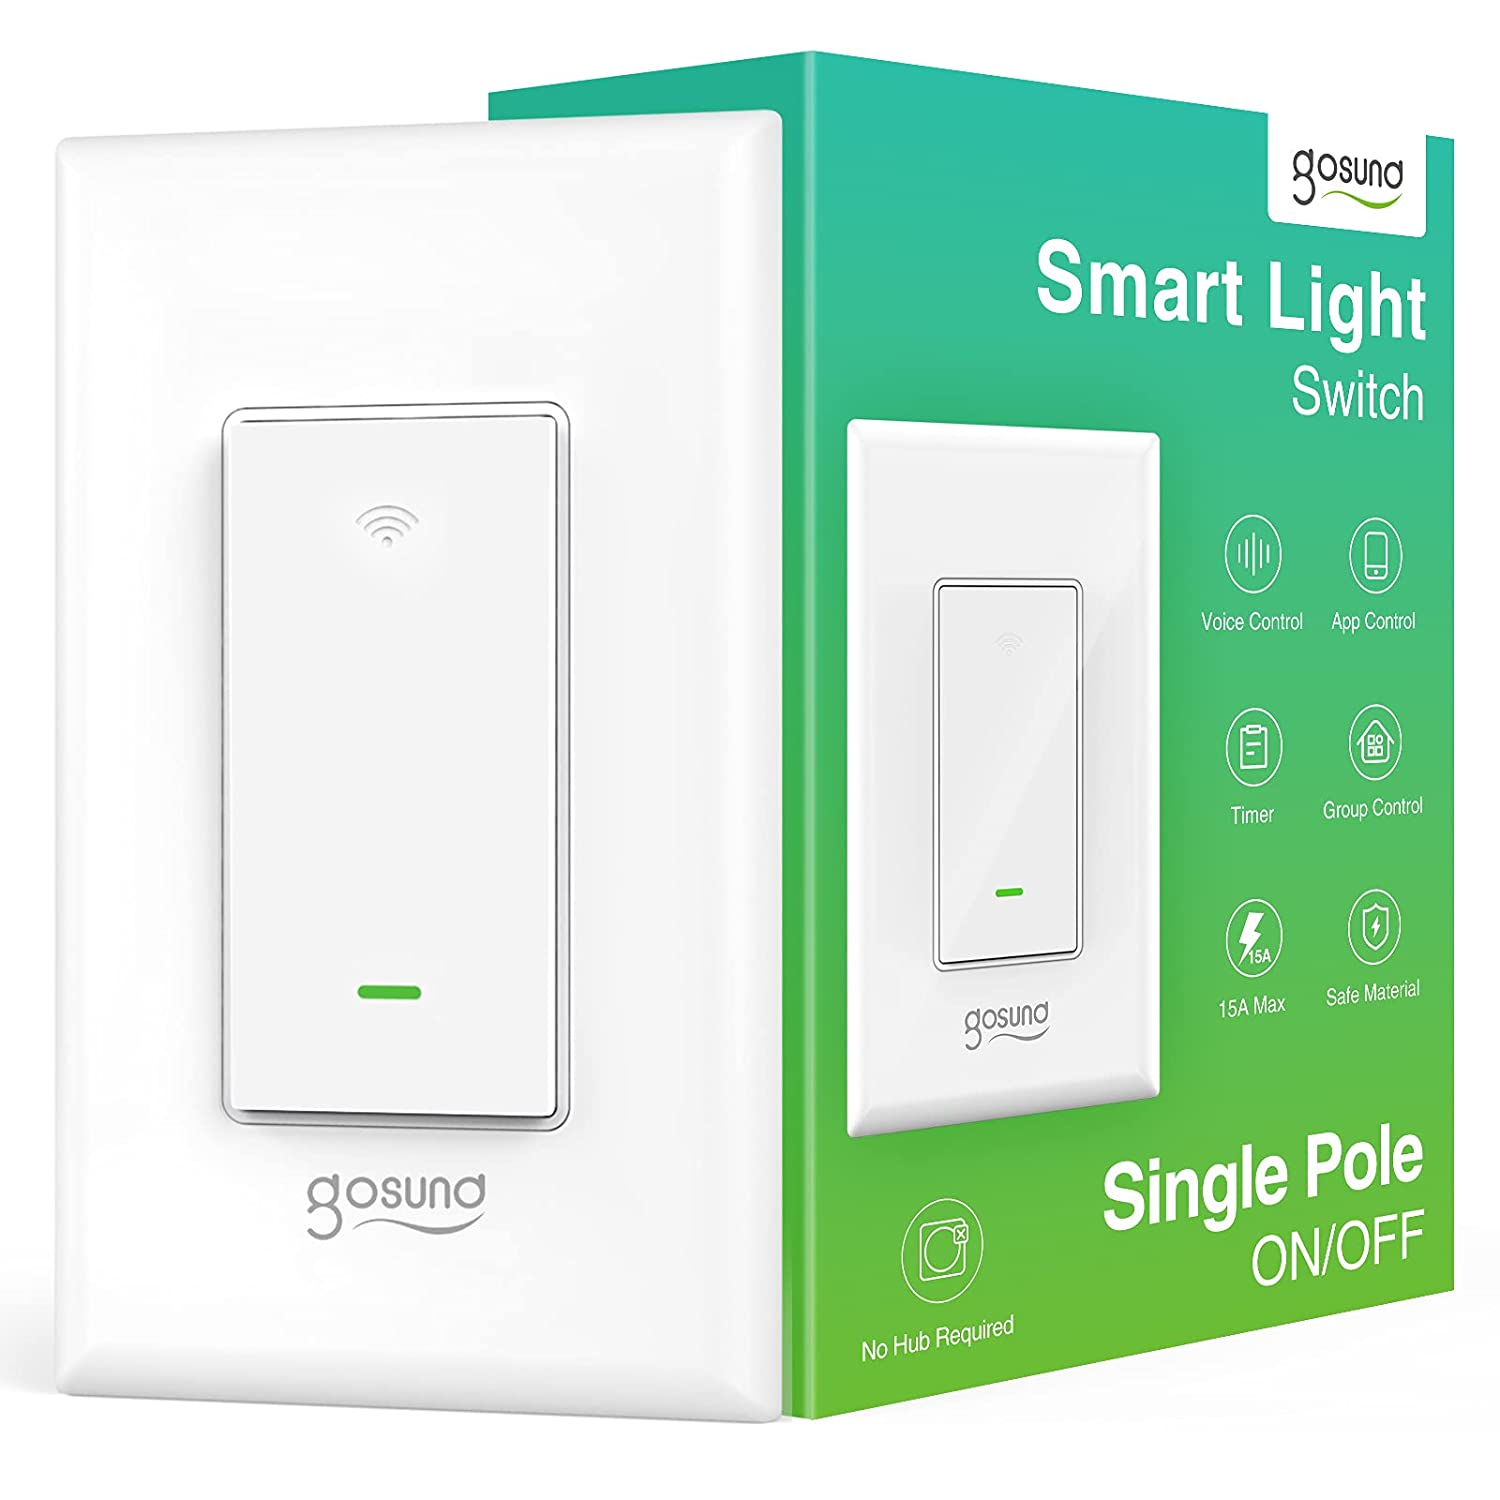 Gosund Smart Light Switch, 2.4GHz WiFi Smart Switch Compatible with Alexa and Google Home, Single-Pole in-Wall Light Switch, Neutral Wire Needed, No Hub Required, UL Certified